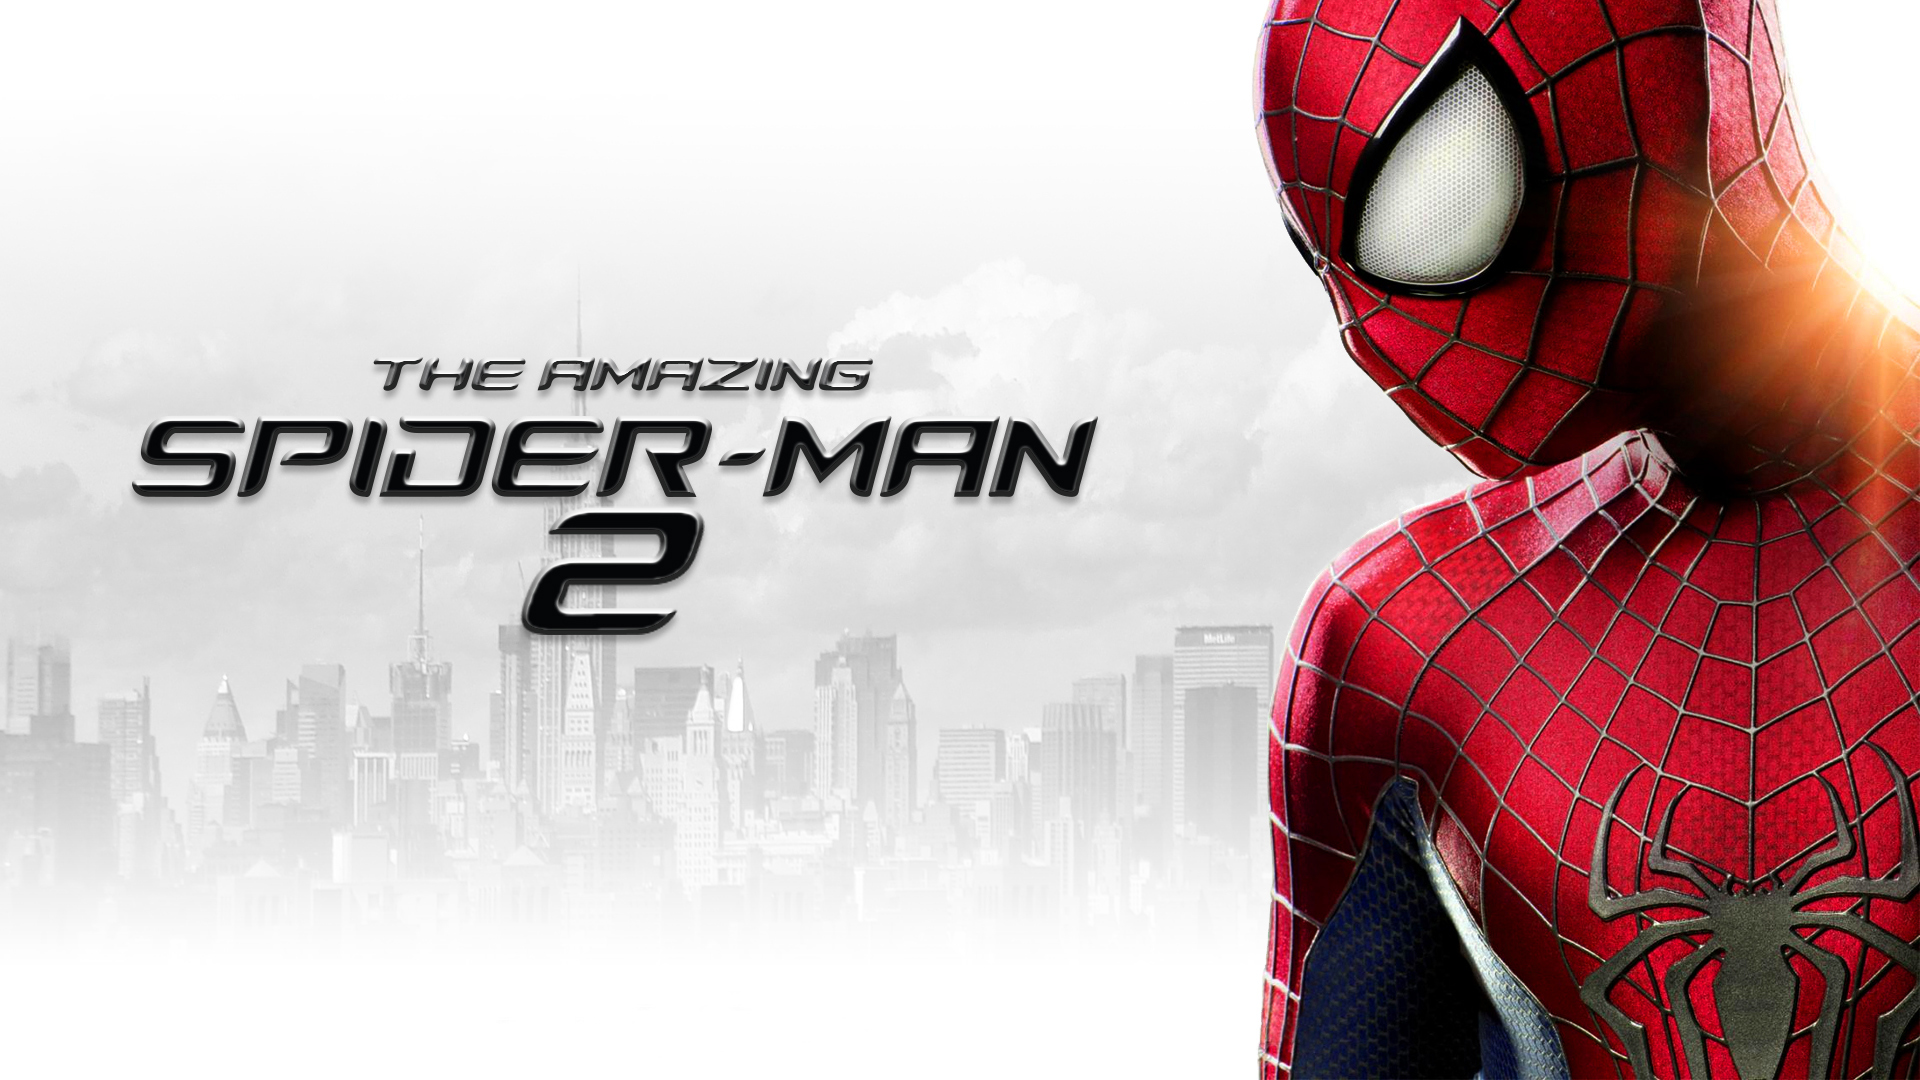 Spiderman Logo Wallpaper Hd 1080p The amazing spider man 2 2014 1920x1080